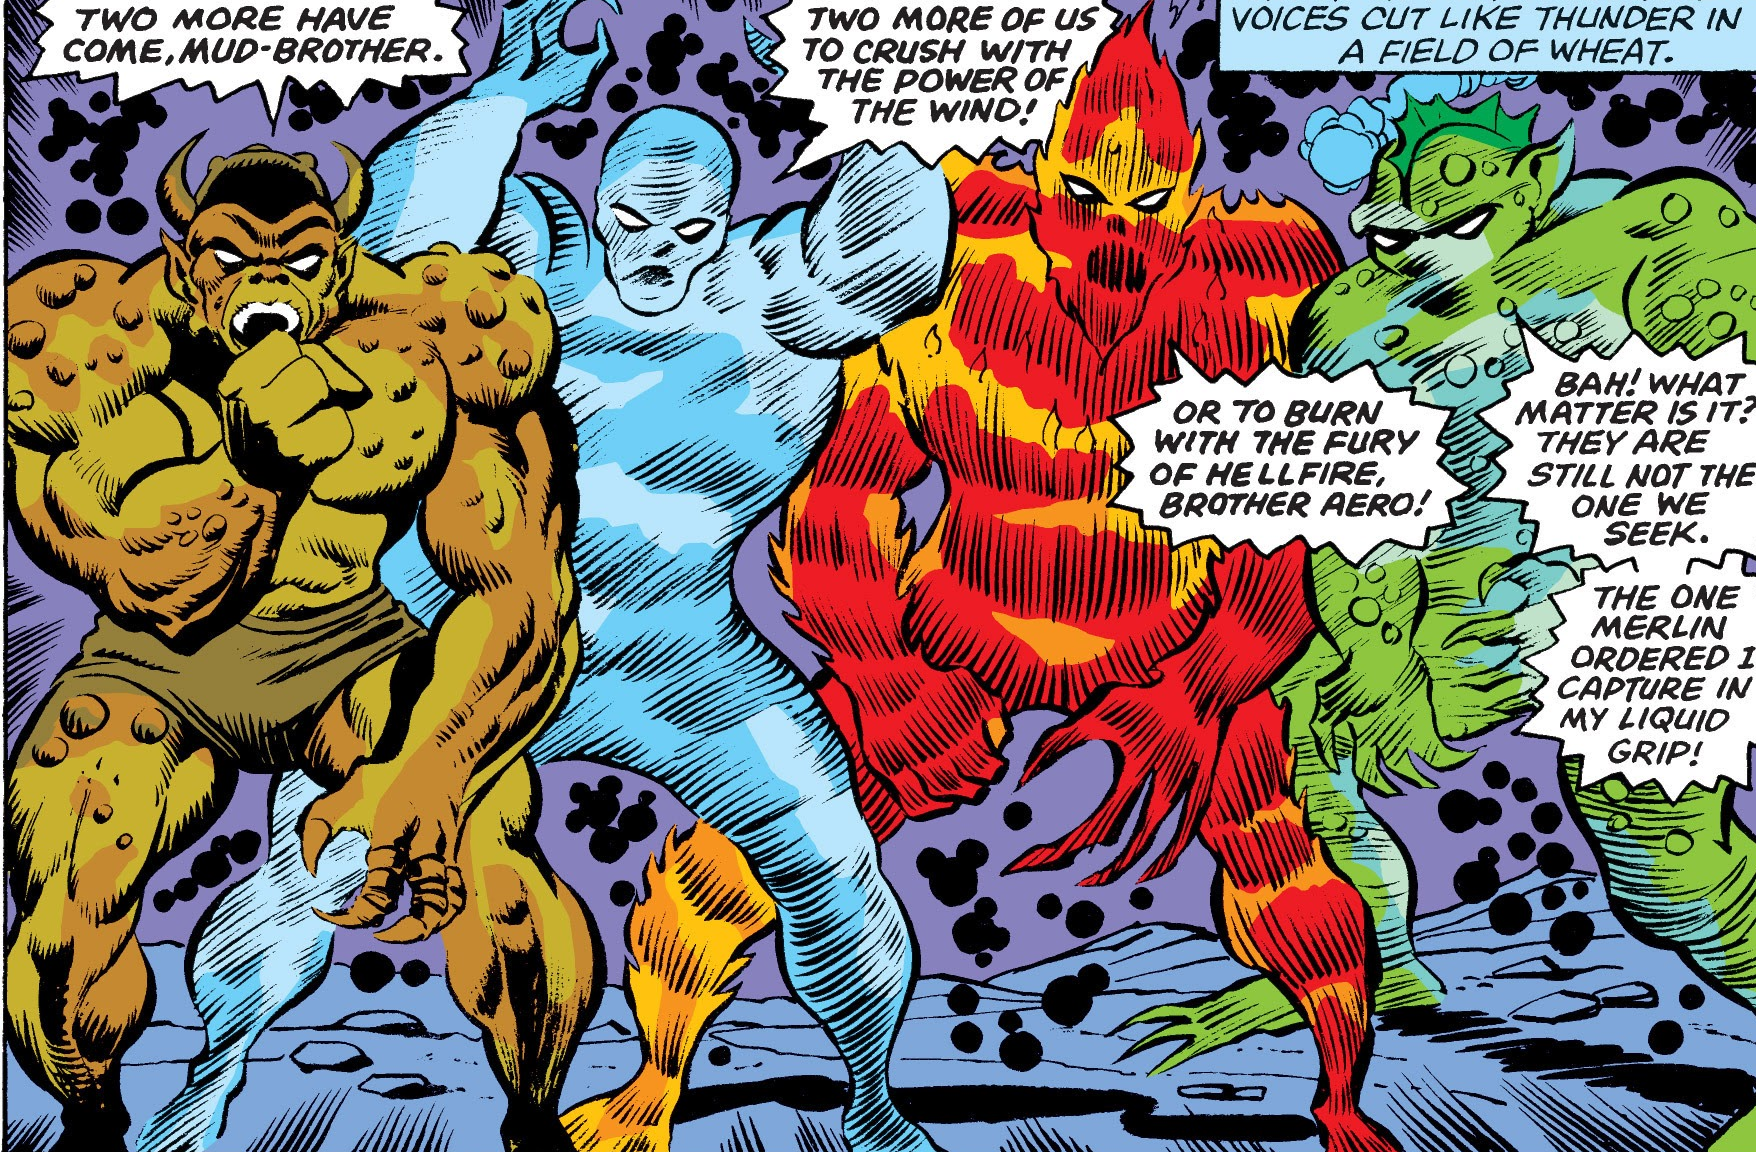 Brothers Four (Earth-616)